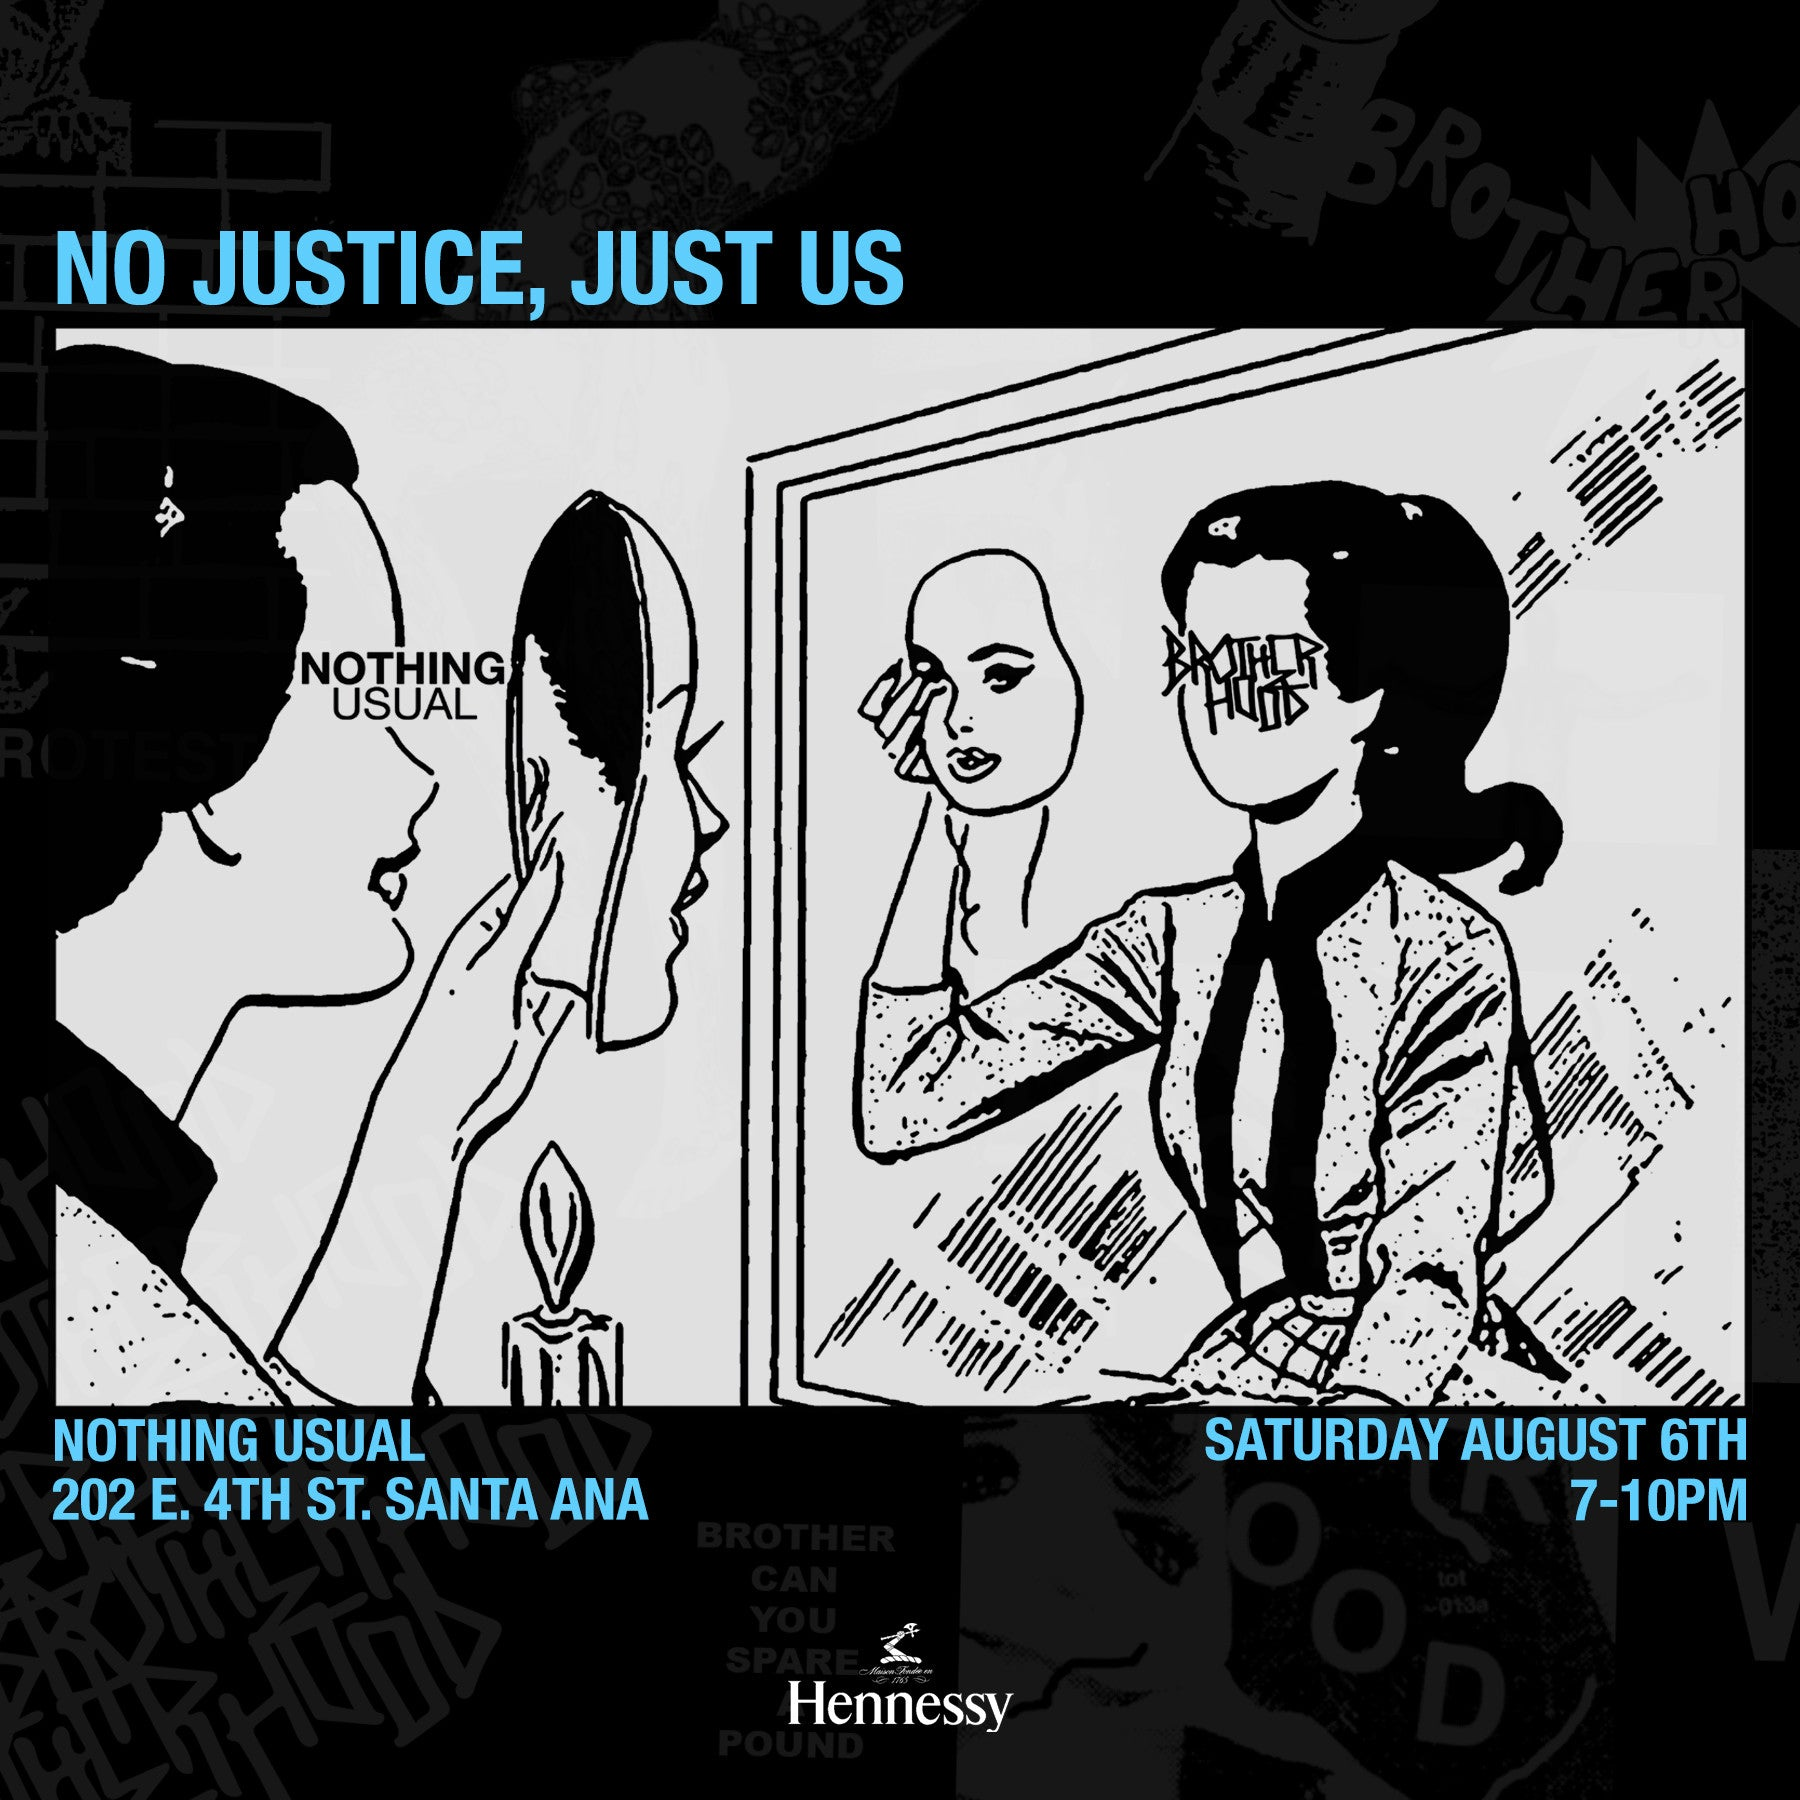 NOT.US // BROTHERHOOD - NO JUSTICE, JUST US